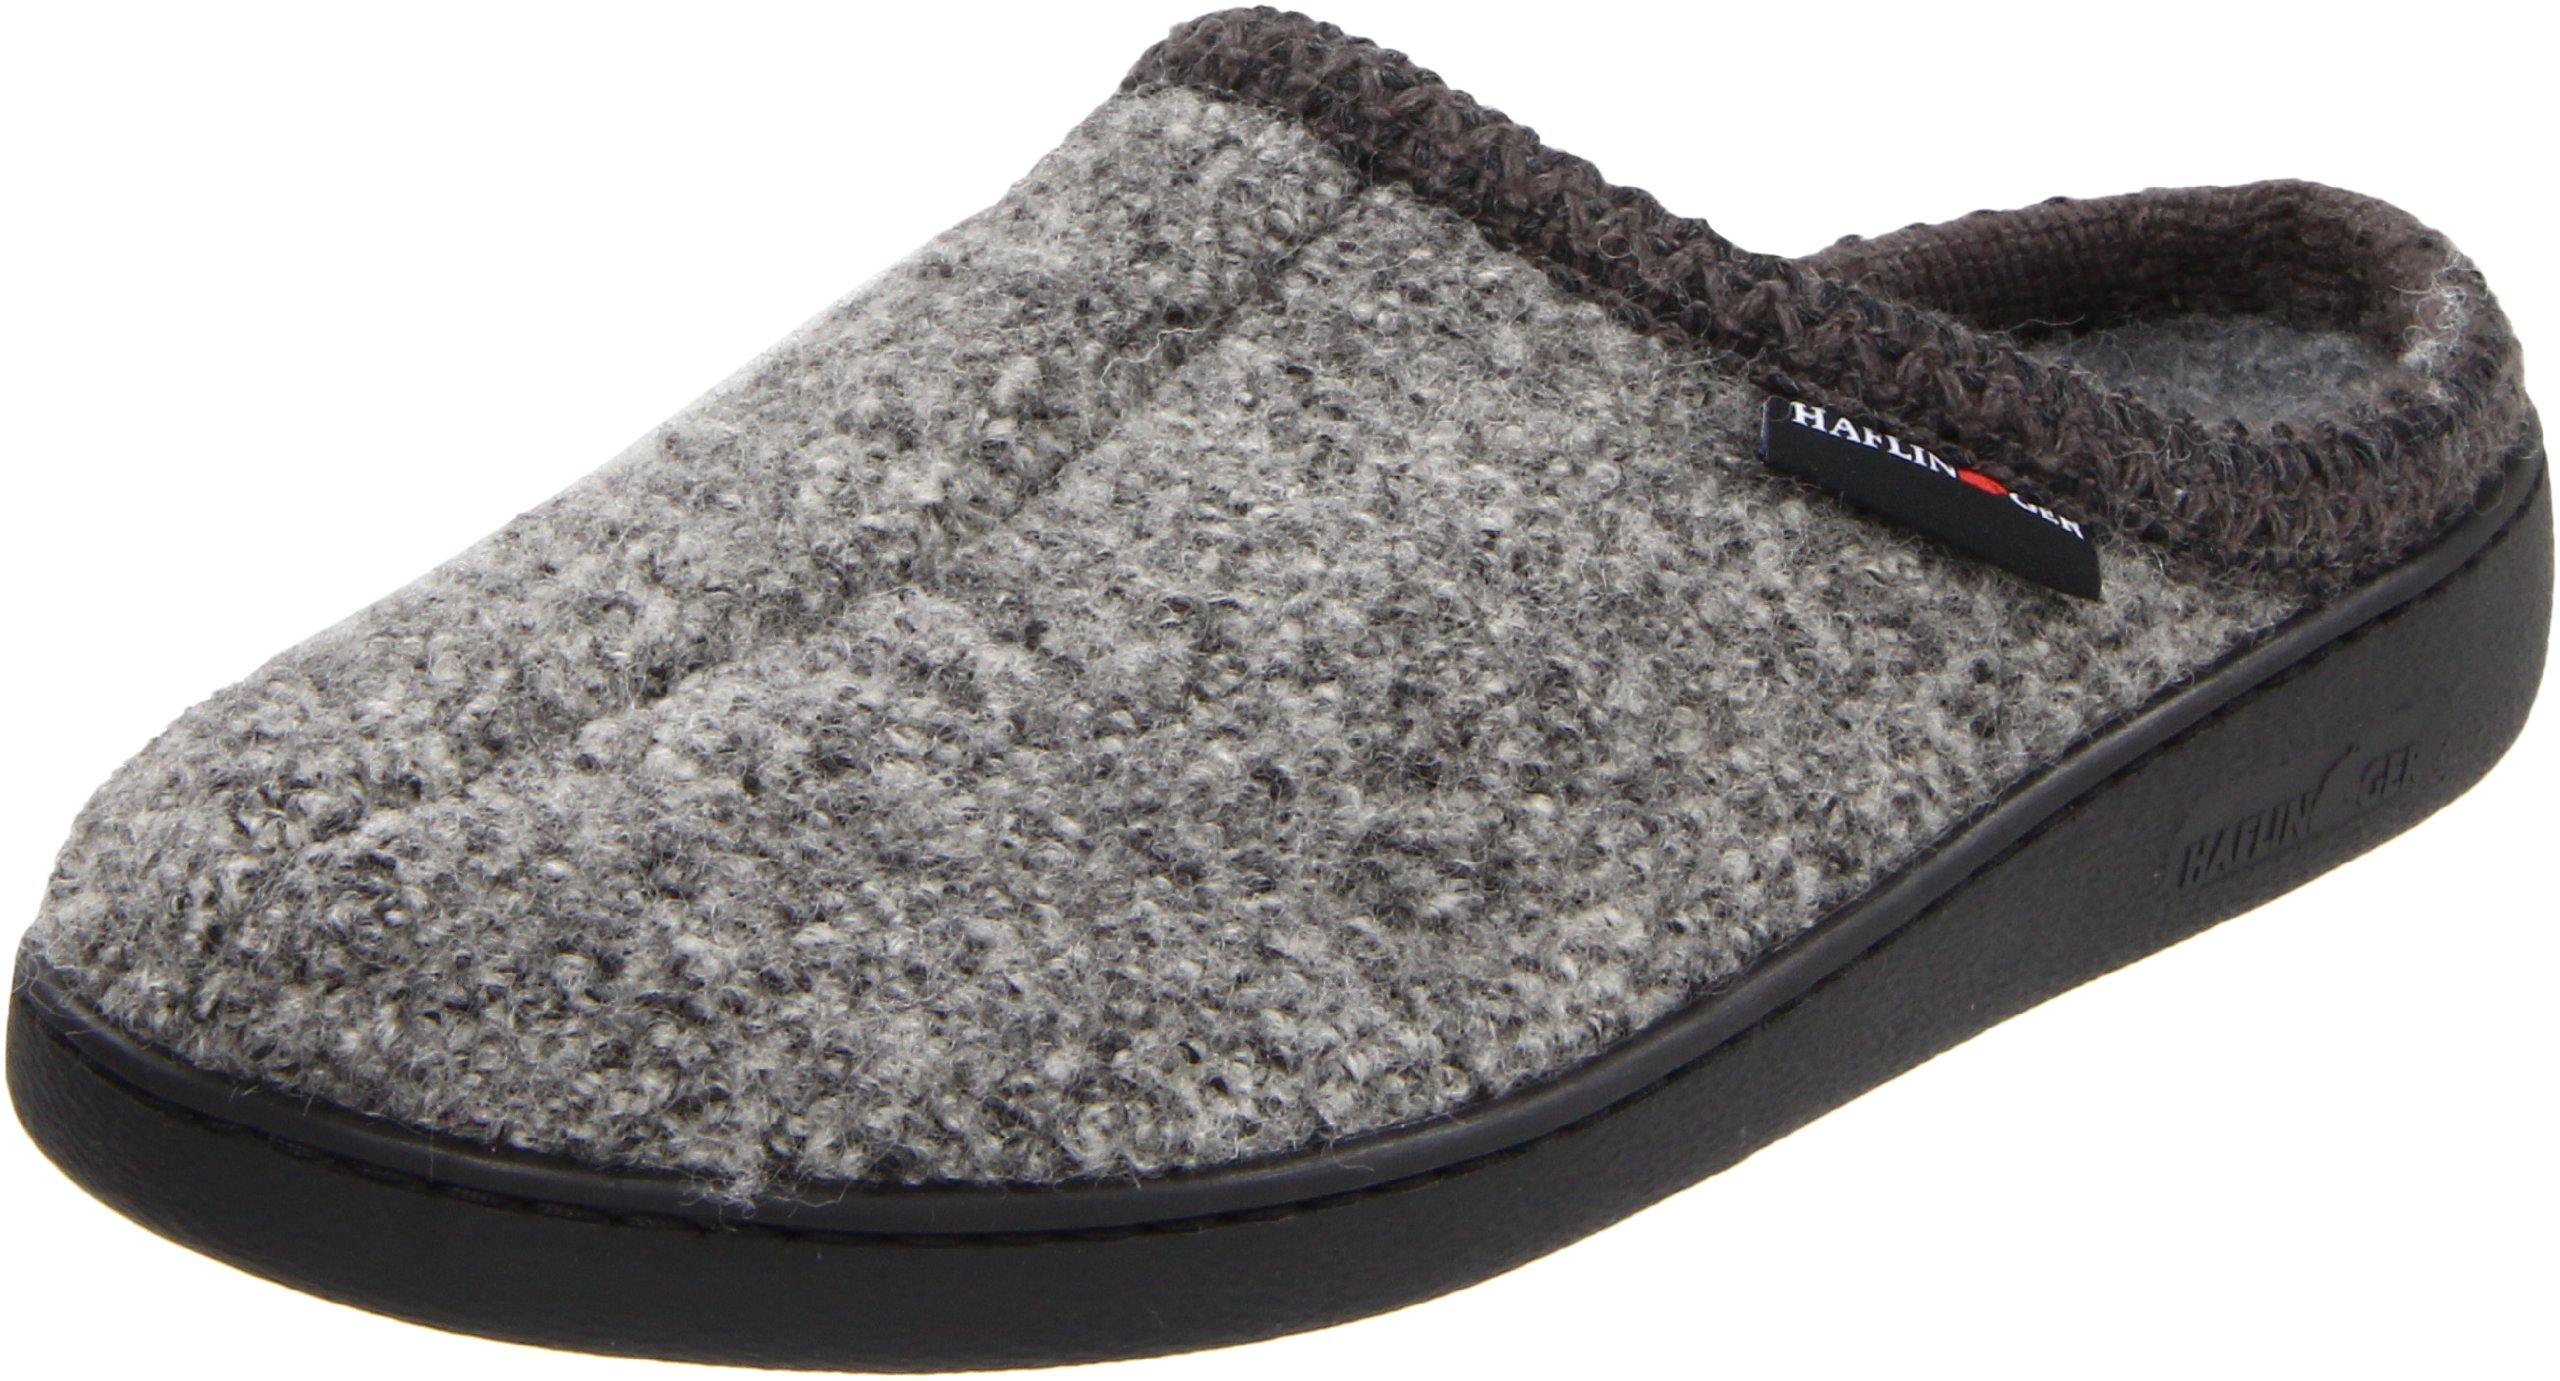 Haflinger Unisex AT Boiled Wool Hard Sole Slipper, Grey Speckle, 43 EU/ 12 M US Women's/10 D US Men